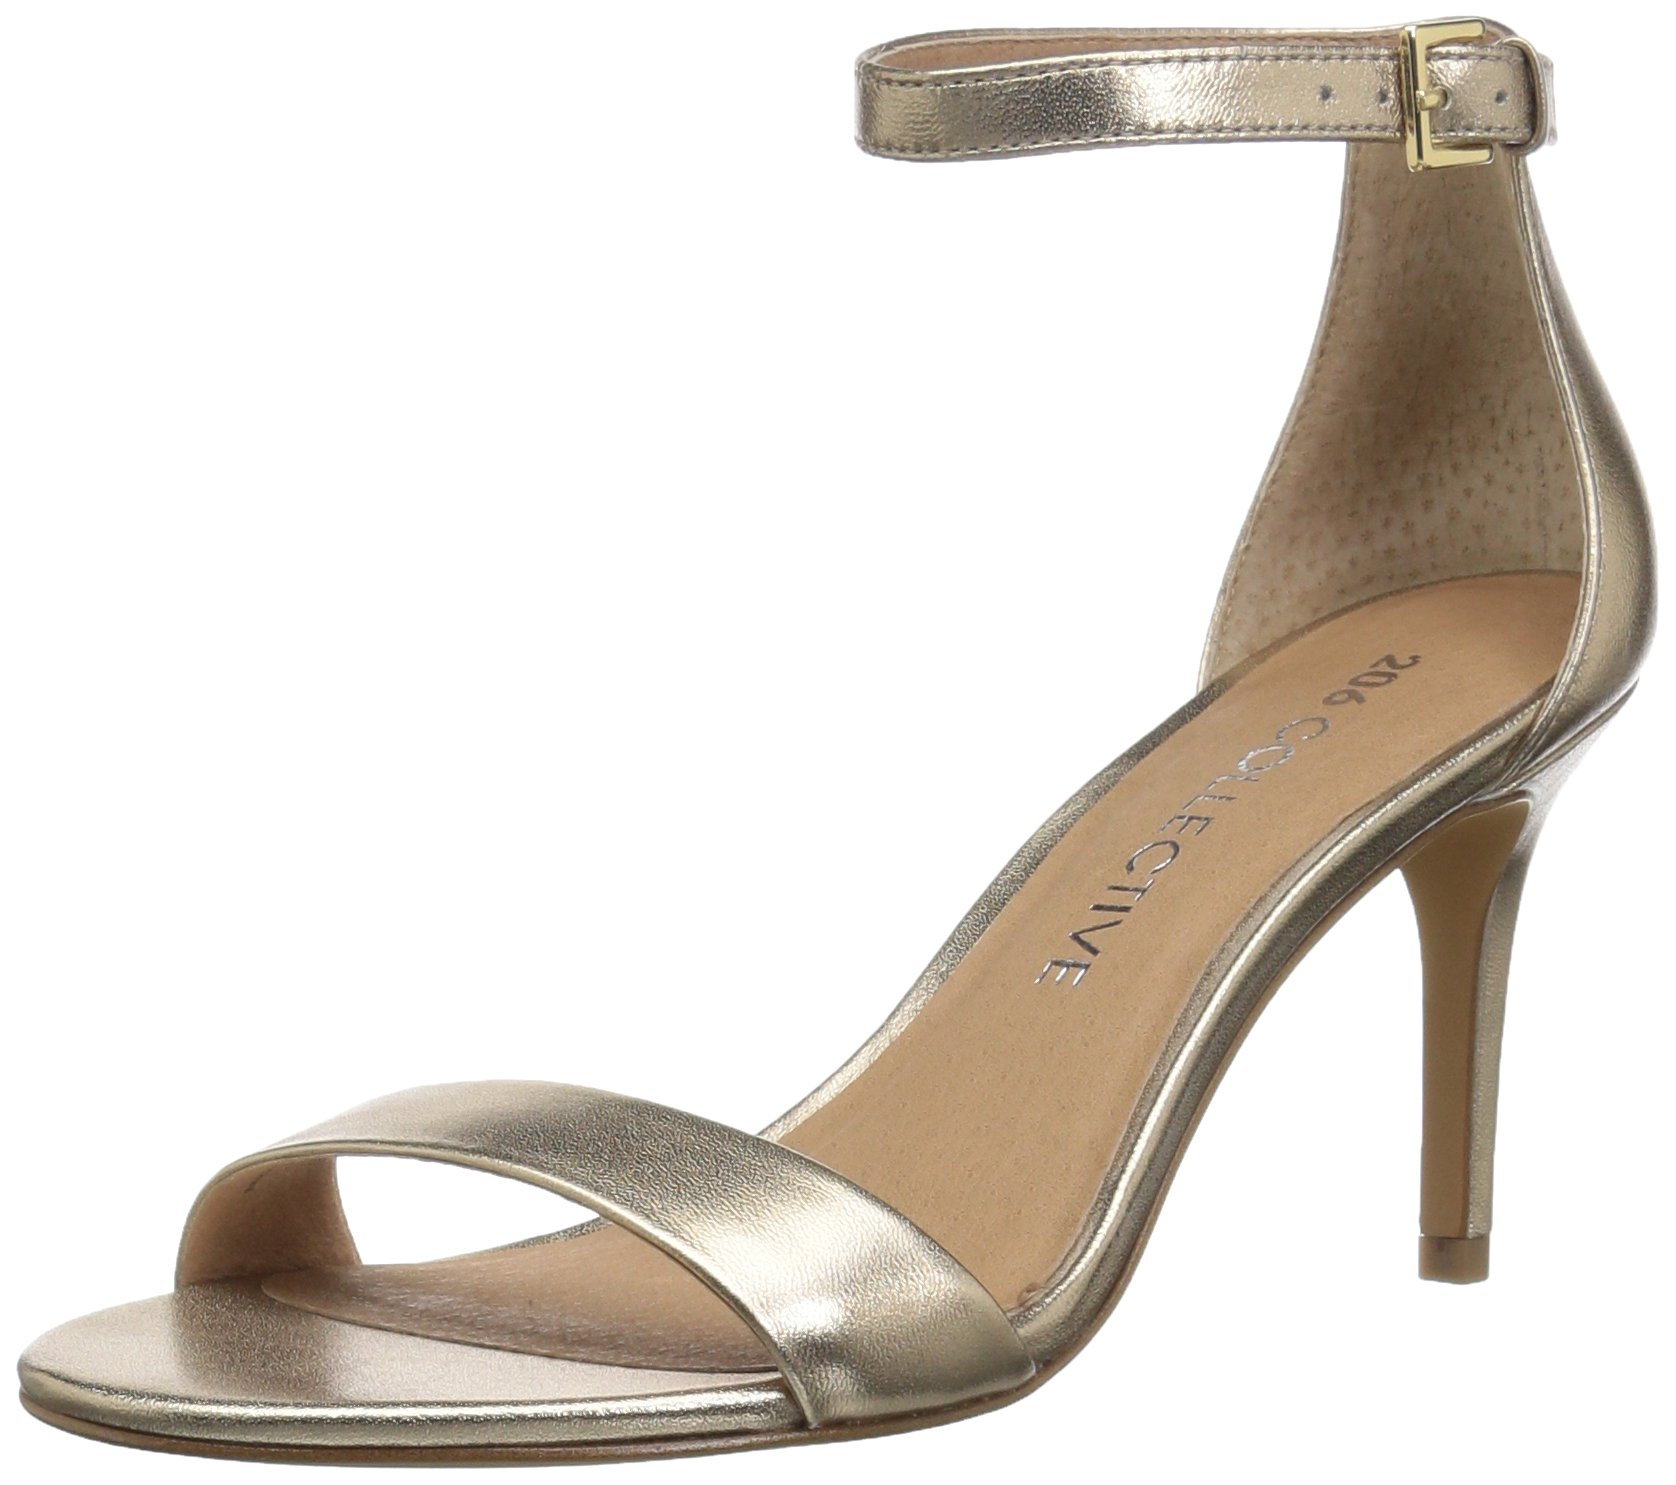 206 Collective Women's Anamarie Stiletto Heel Dress High Heeled Sandal, Gold Leather, 5 B US